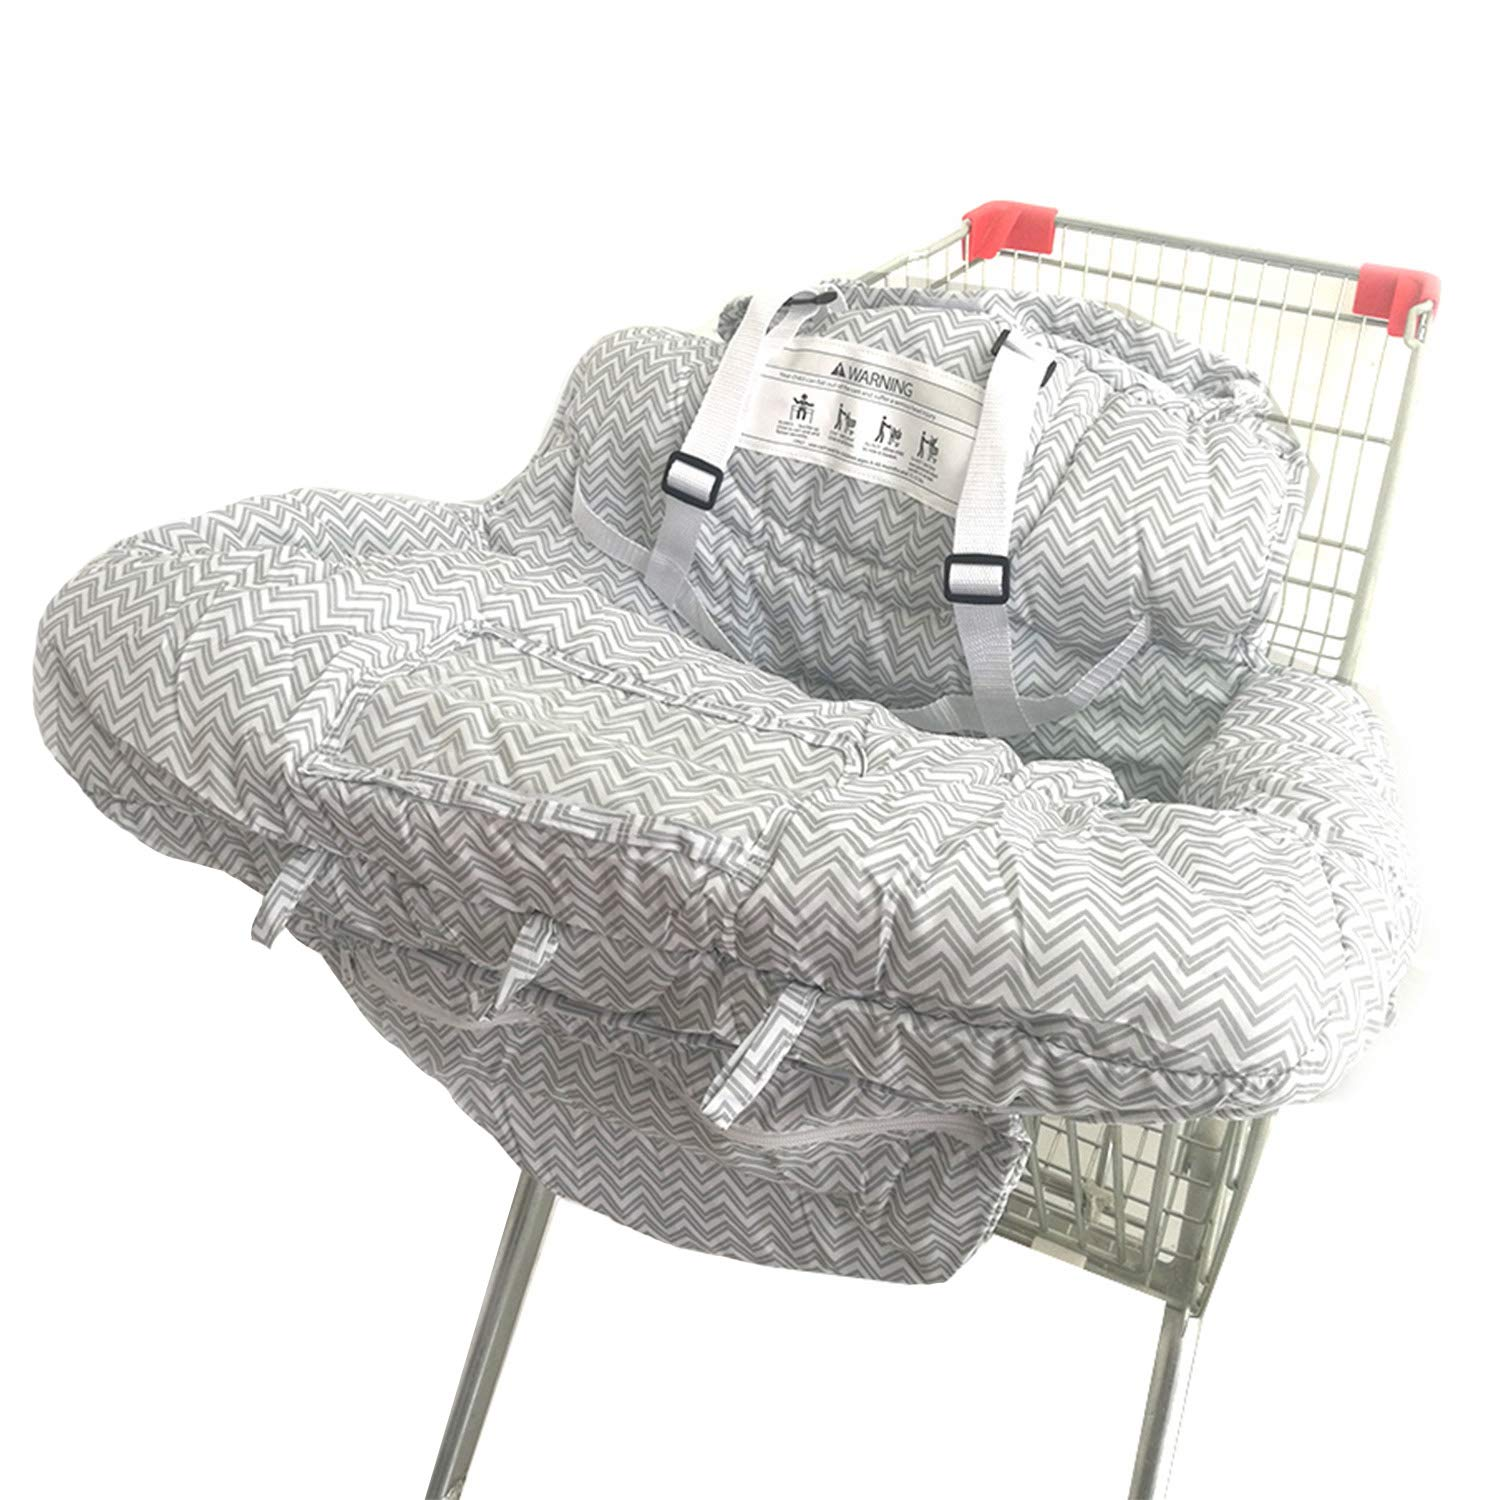 Shopping Cart Cover for Baby- 2-in-1 - Foldable Portable Seat with Bag for Infant to Toddler - Compatible with Grocery Cart Seat and High Chair -Gray Chevron Pattern